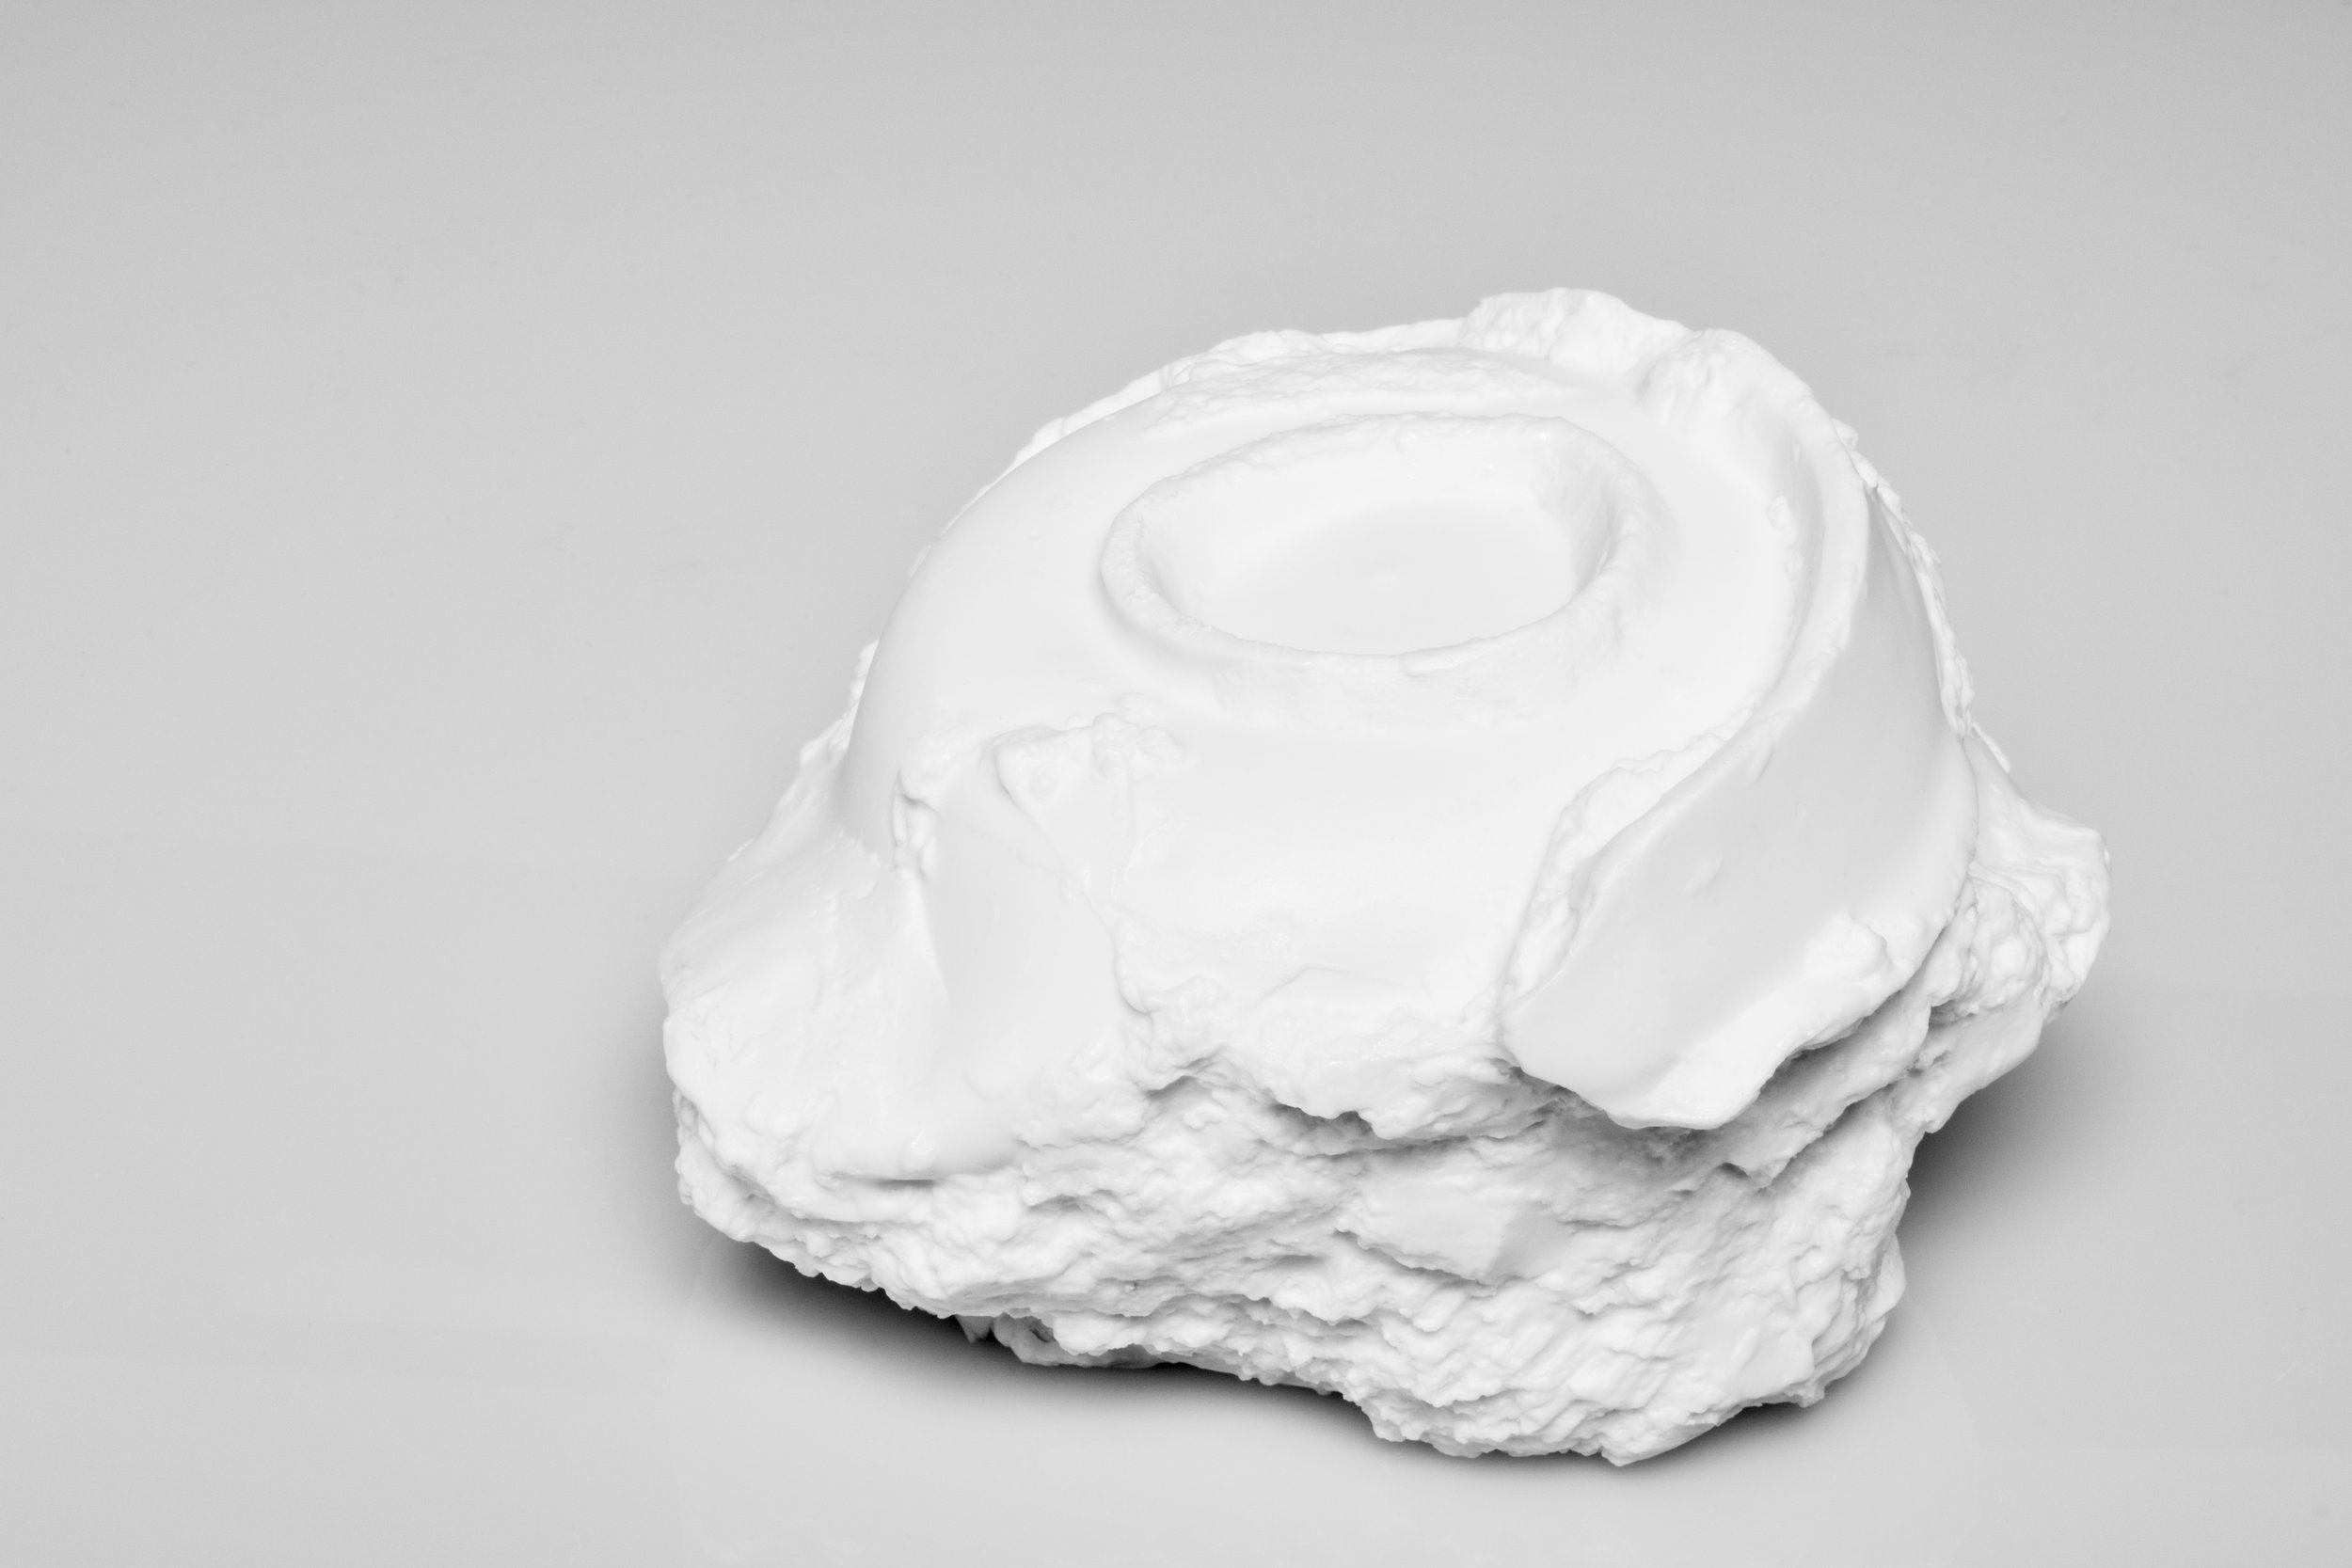 Saggar | Form Series , Jindezhen Porcelain with Glaze. 2017 - on going  Ming Dynasty collapsed saggar and porcelain forms were collected from various sites around Jingdezhen, China, and moved through the mold making process; cast as thin porcelain versions of their former selves. Shifting form to surface, these objects touch lightly towards ideas related to dislocation, longing, and the inescapable potential of the cast off. Collapsing time and place, their glazed interiors seek to reanimate the objects as functional vessels of the present.